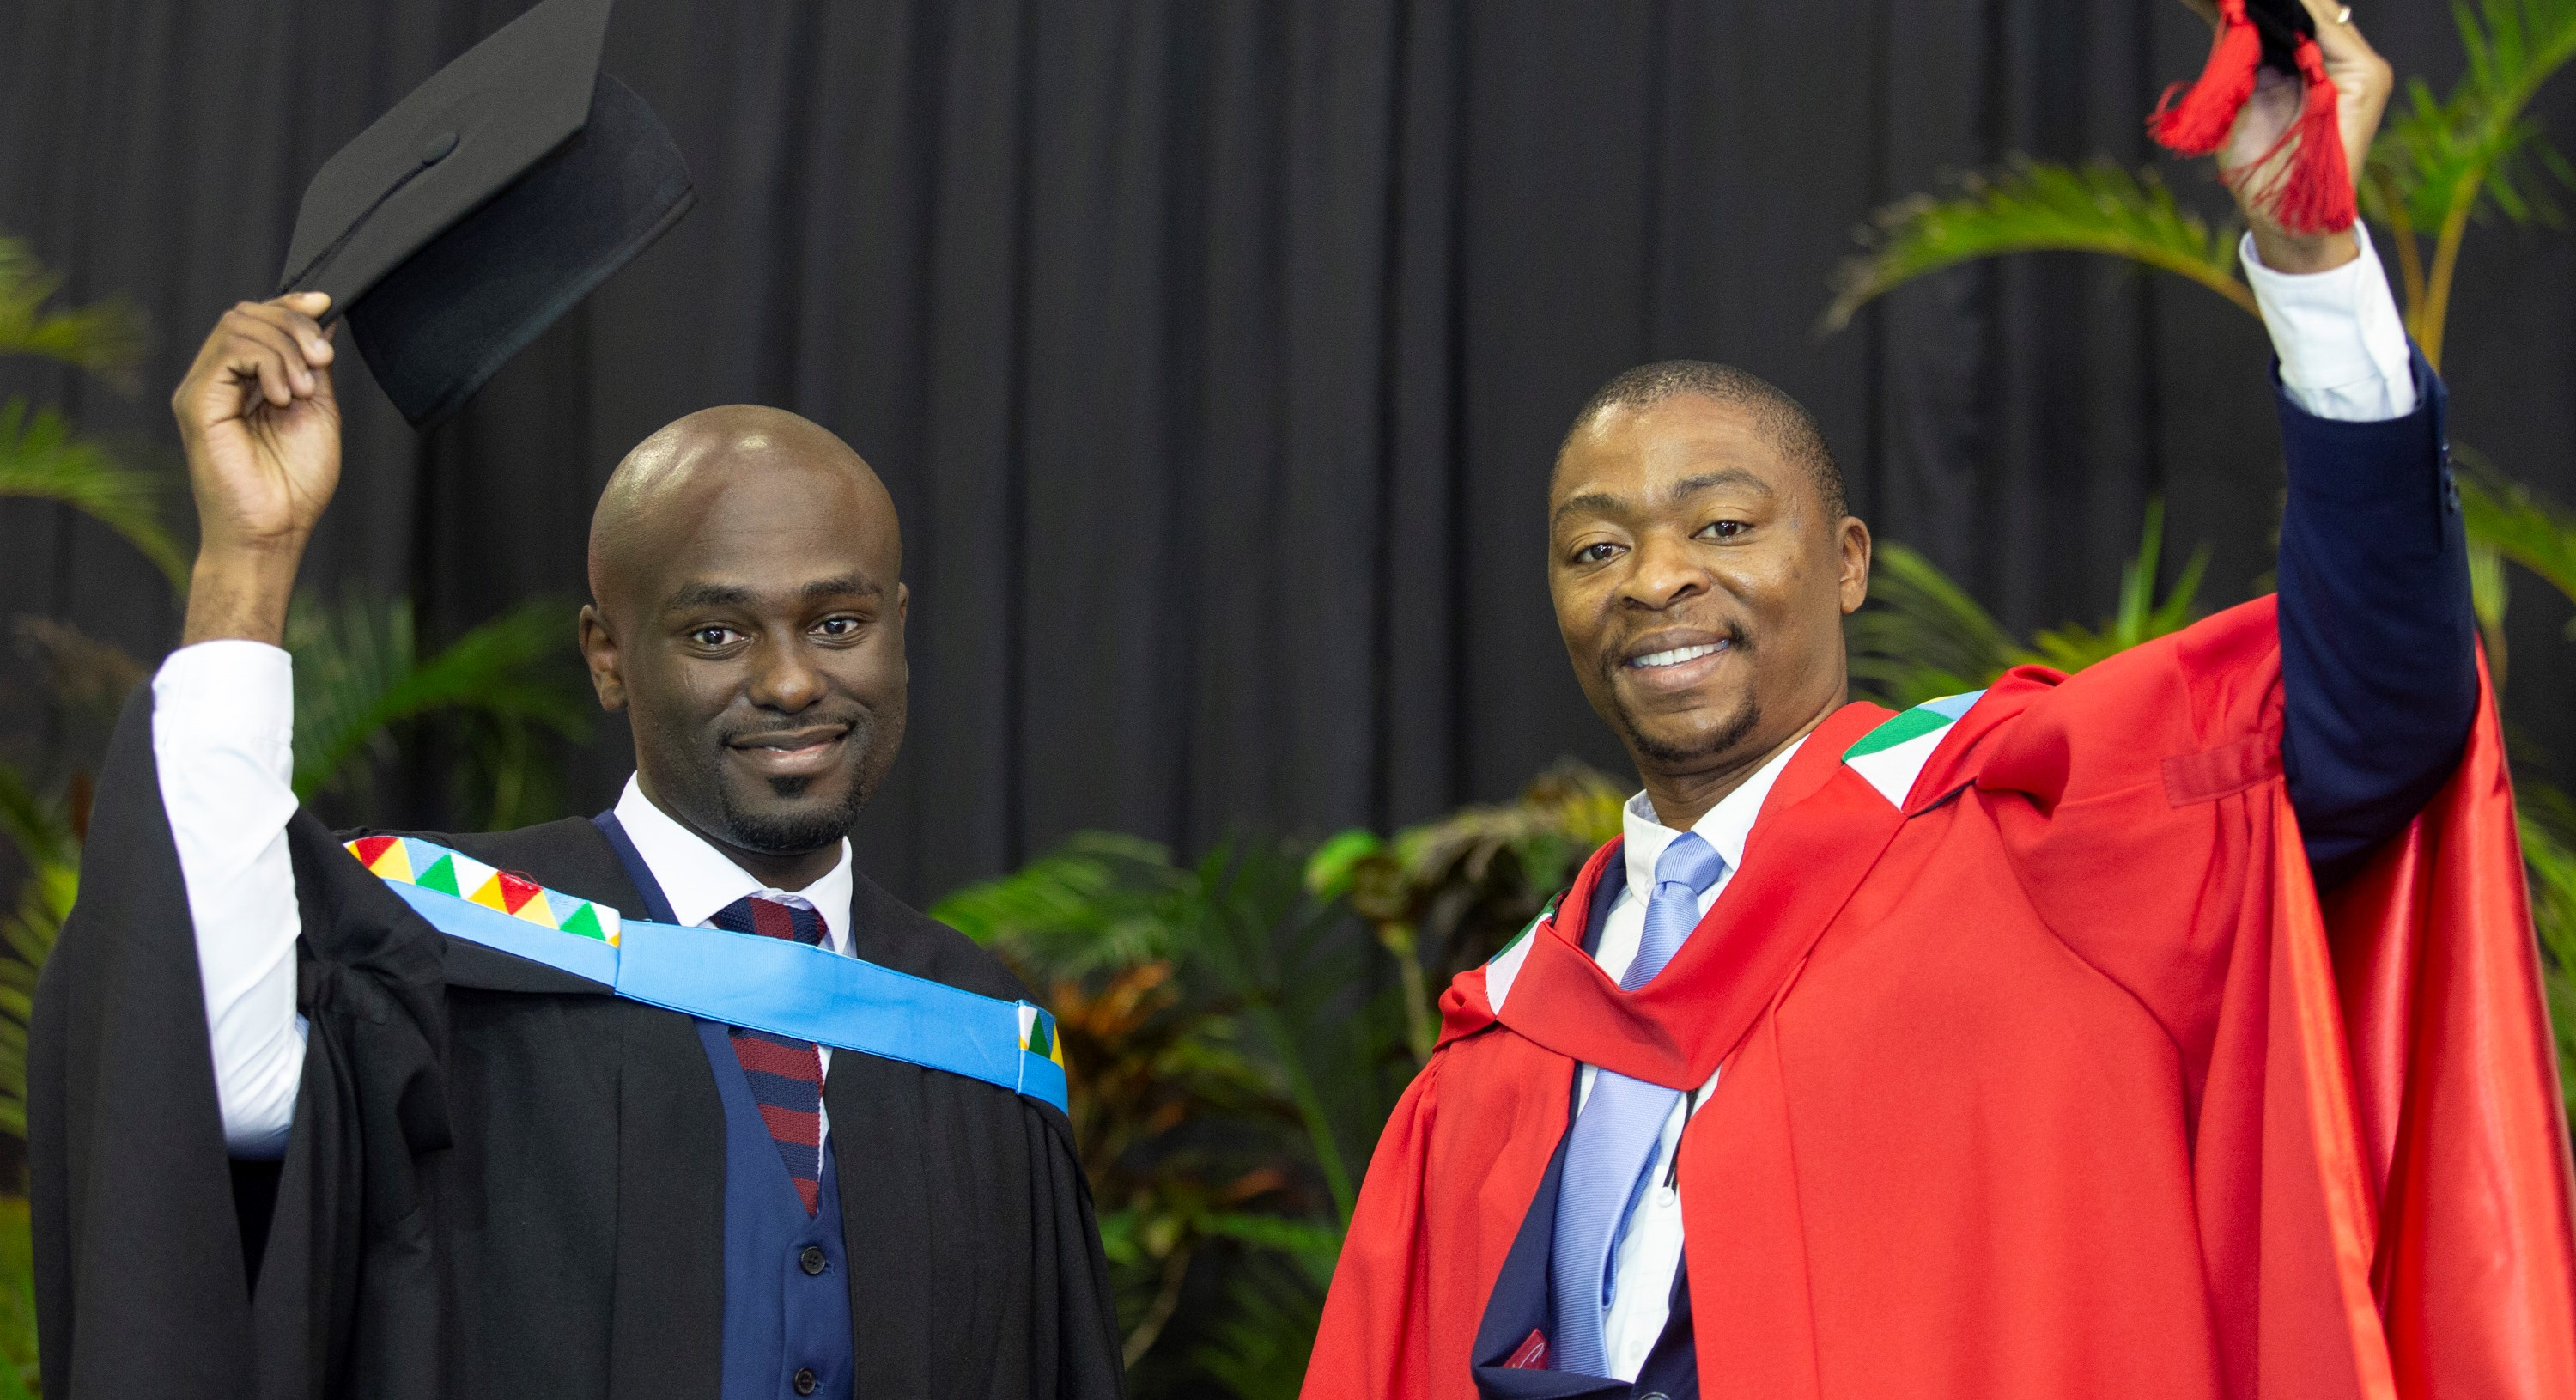 Dr Sibonelo Blose and his student Mr Ndumiso Khuzwayo graduated from UKZN with their PhD and Masters in Education respectively.